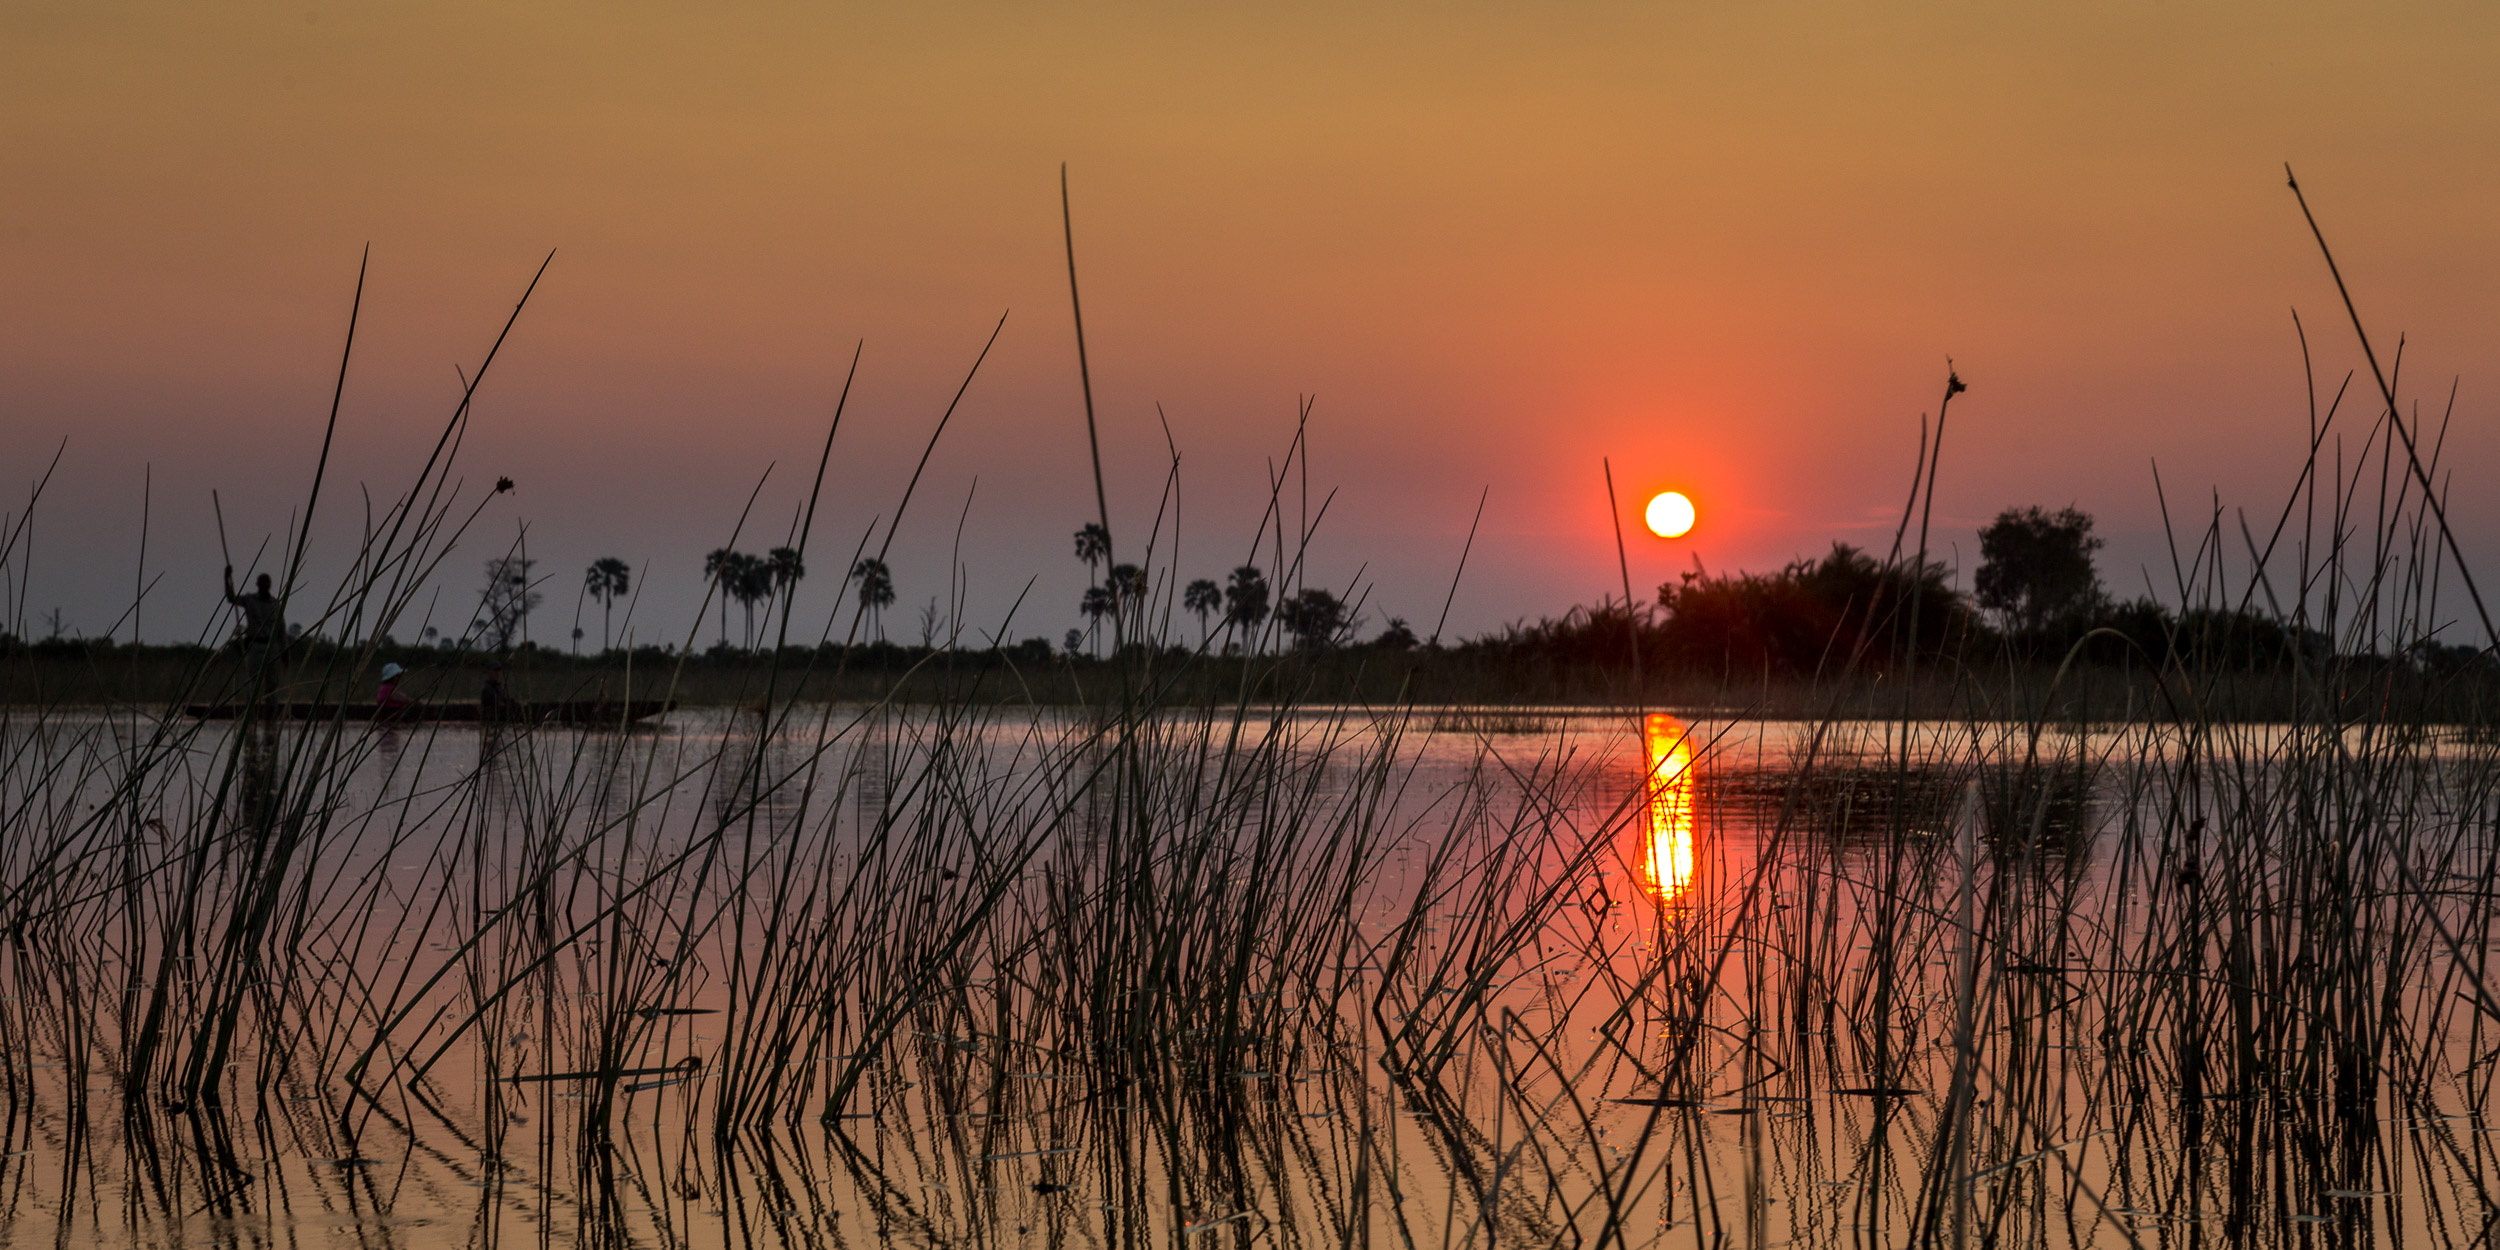 OKAVANGO DELTA SAFARI - 31 OCTOBER – 9 NOVEMBER 2020